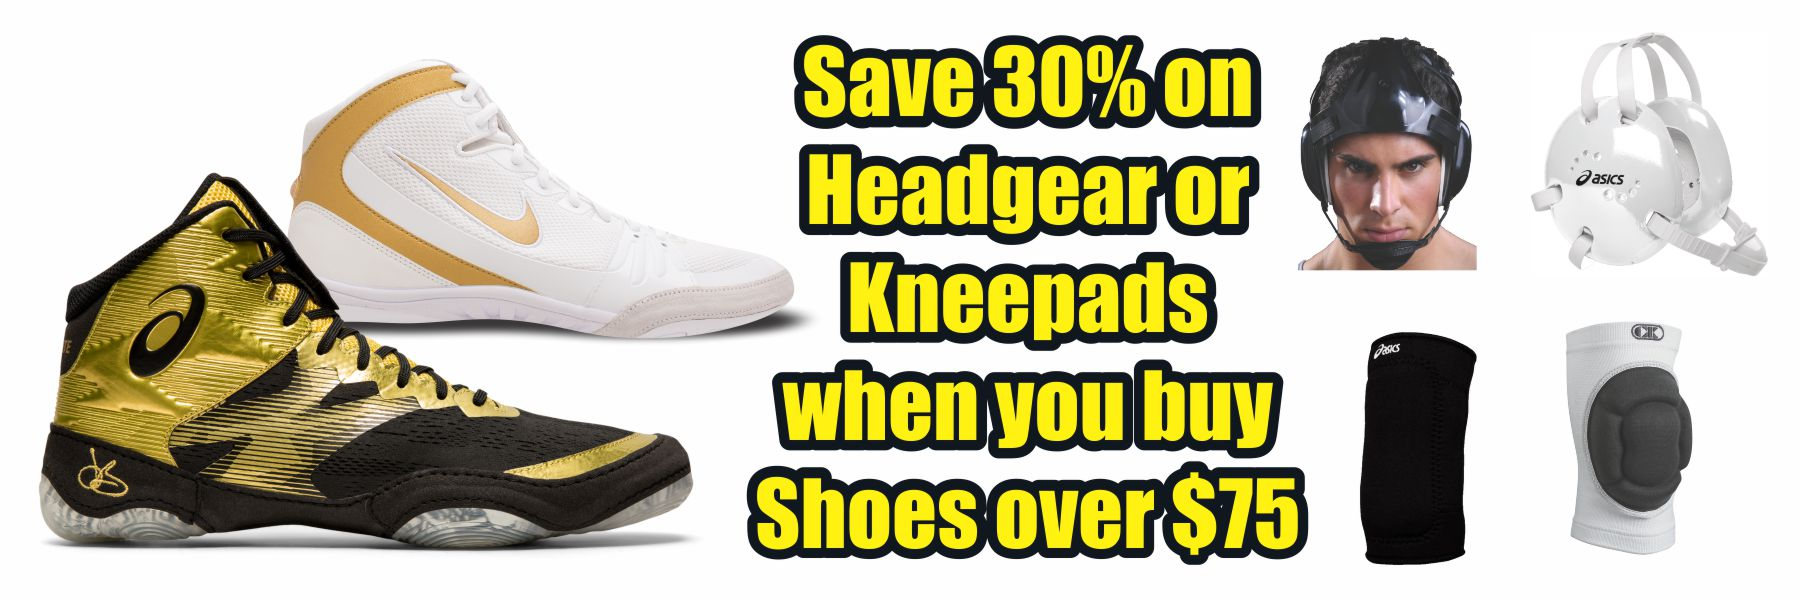 Hero Image: Save 30% on Headgear and Kneepads when you buy Shoes over $75.00.